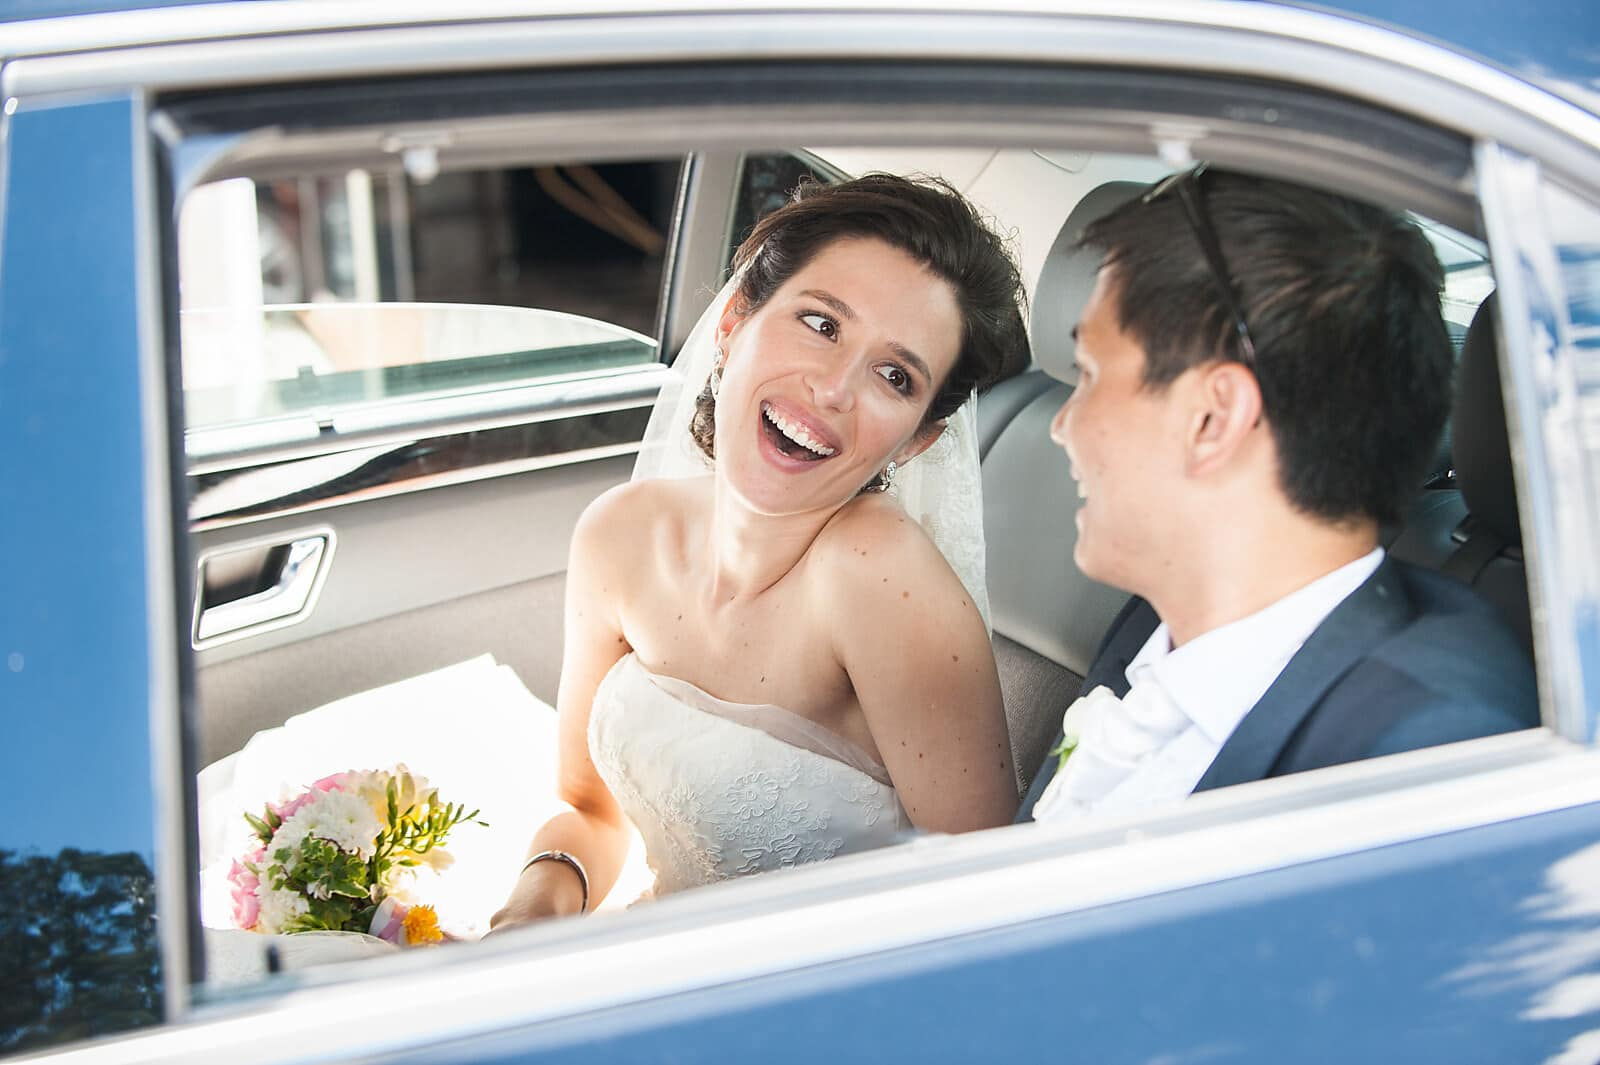 Bride and groom smile at each other in their porto destination wedding car